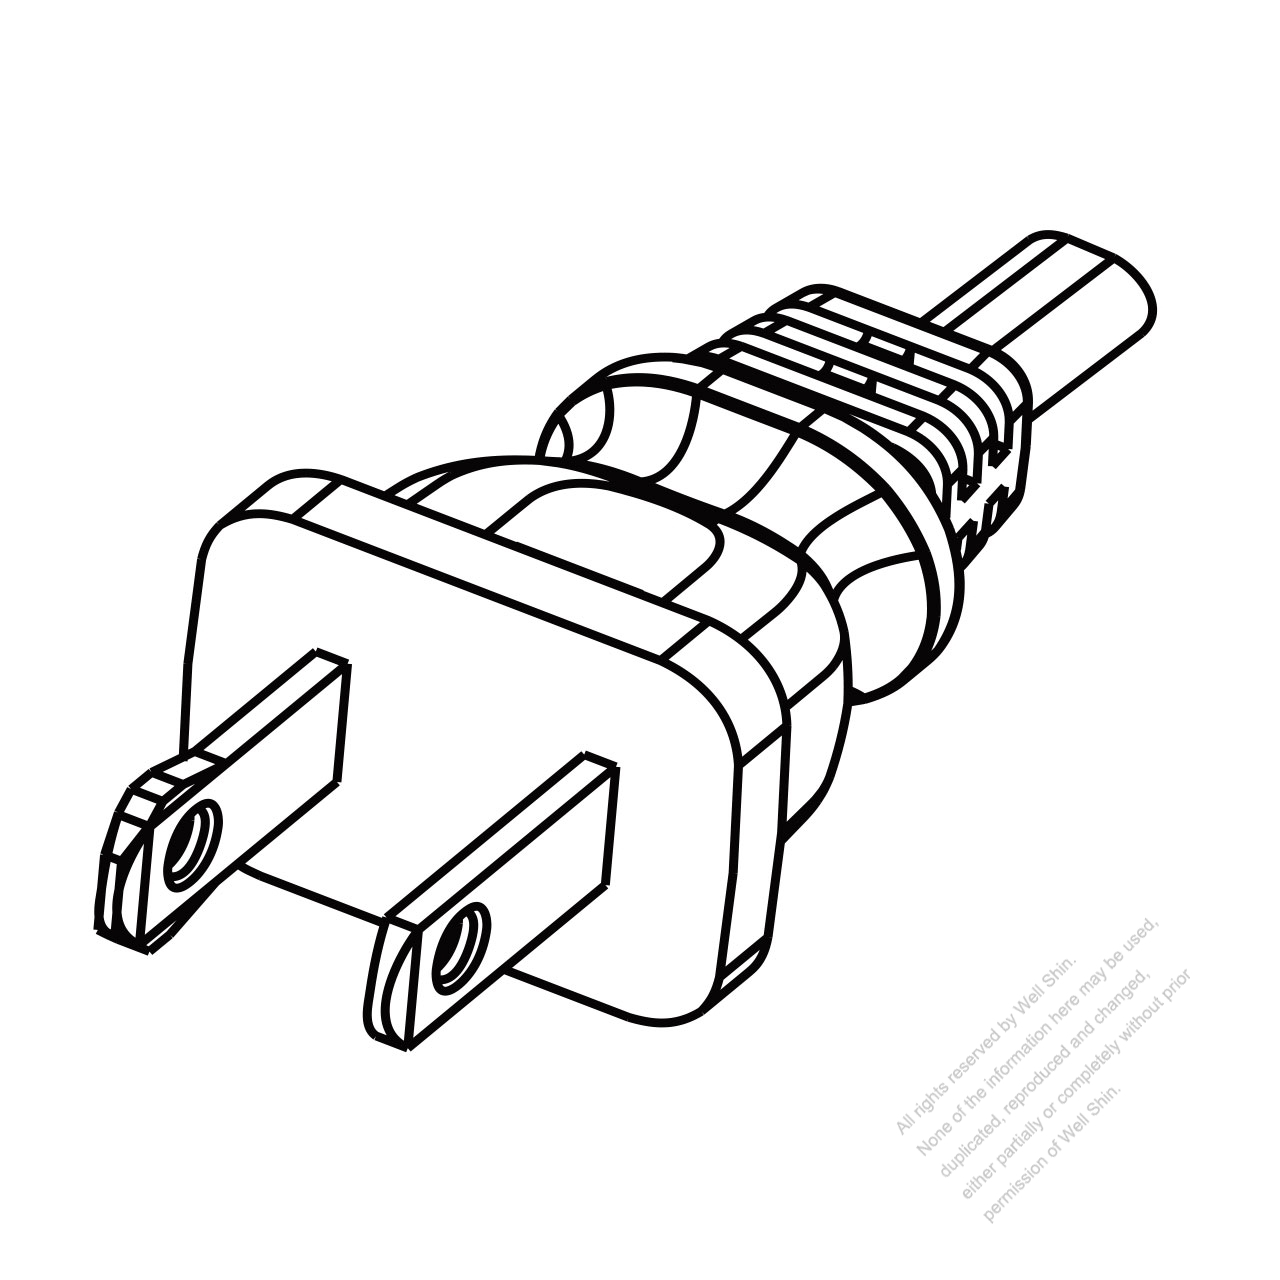 50 Plug Wiring Diagram likewise Hubbell Twist Lock Wiring Diagram also 4 Wire Locking Plug Wiring Diagram as well Nema 14 50 Wiring Diagram likewise Nema 10 30 Wiring Diagram. on 3 prong 50 amp receptacle wiring